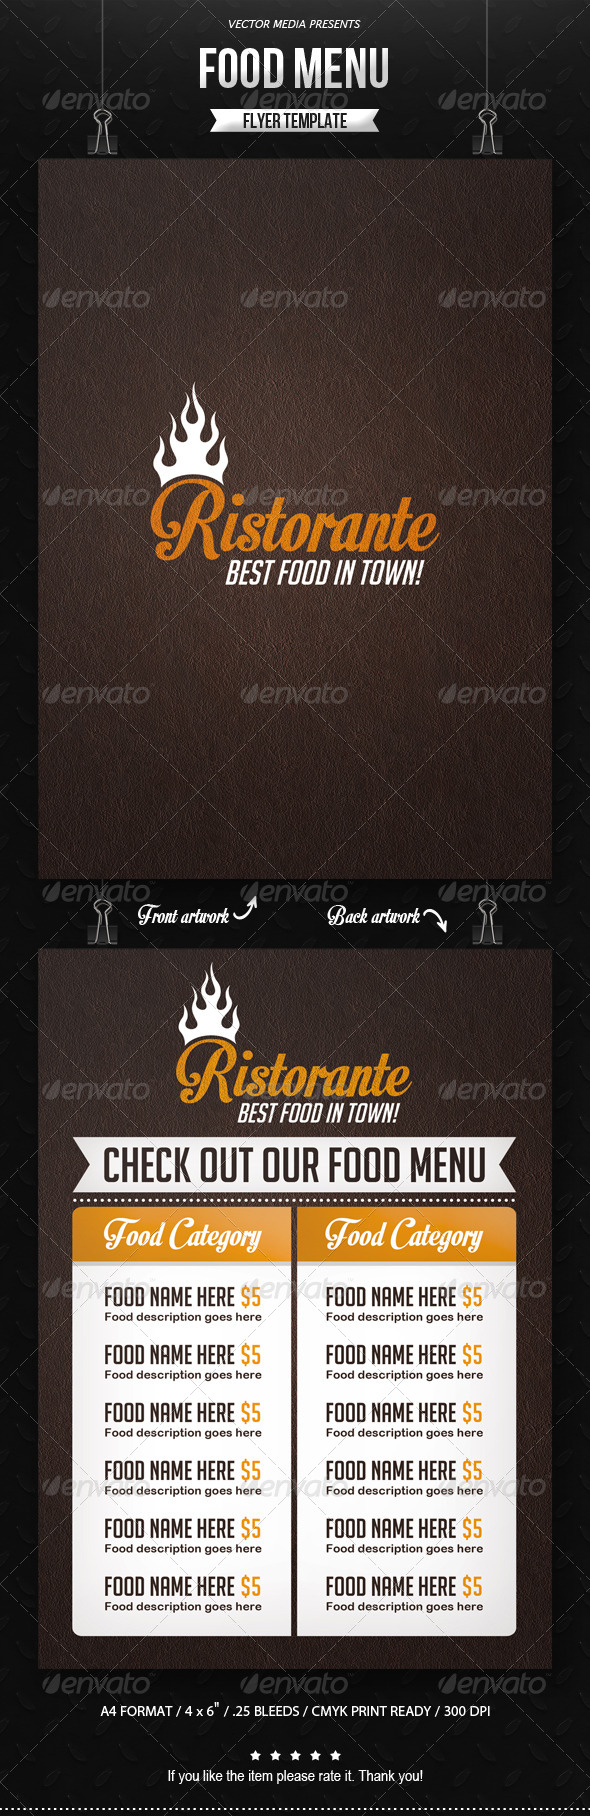 Food Menu - Flyer